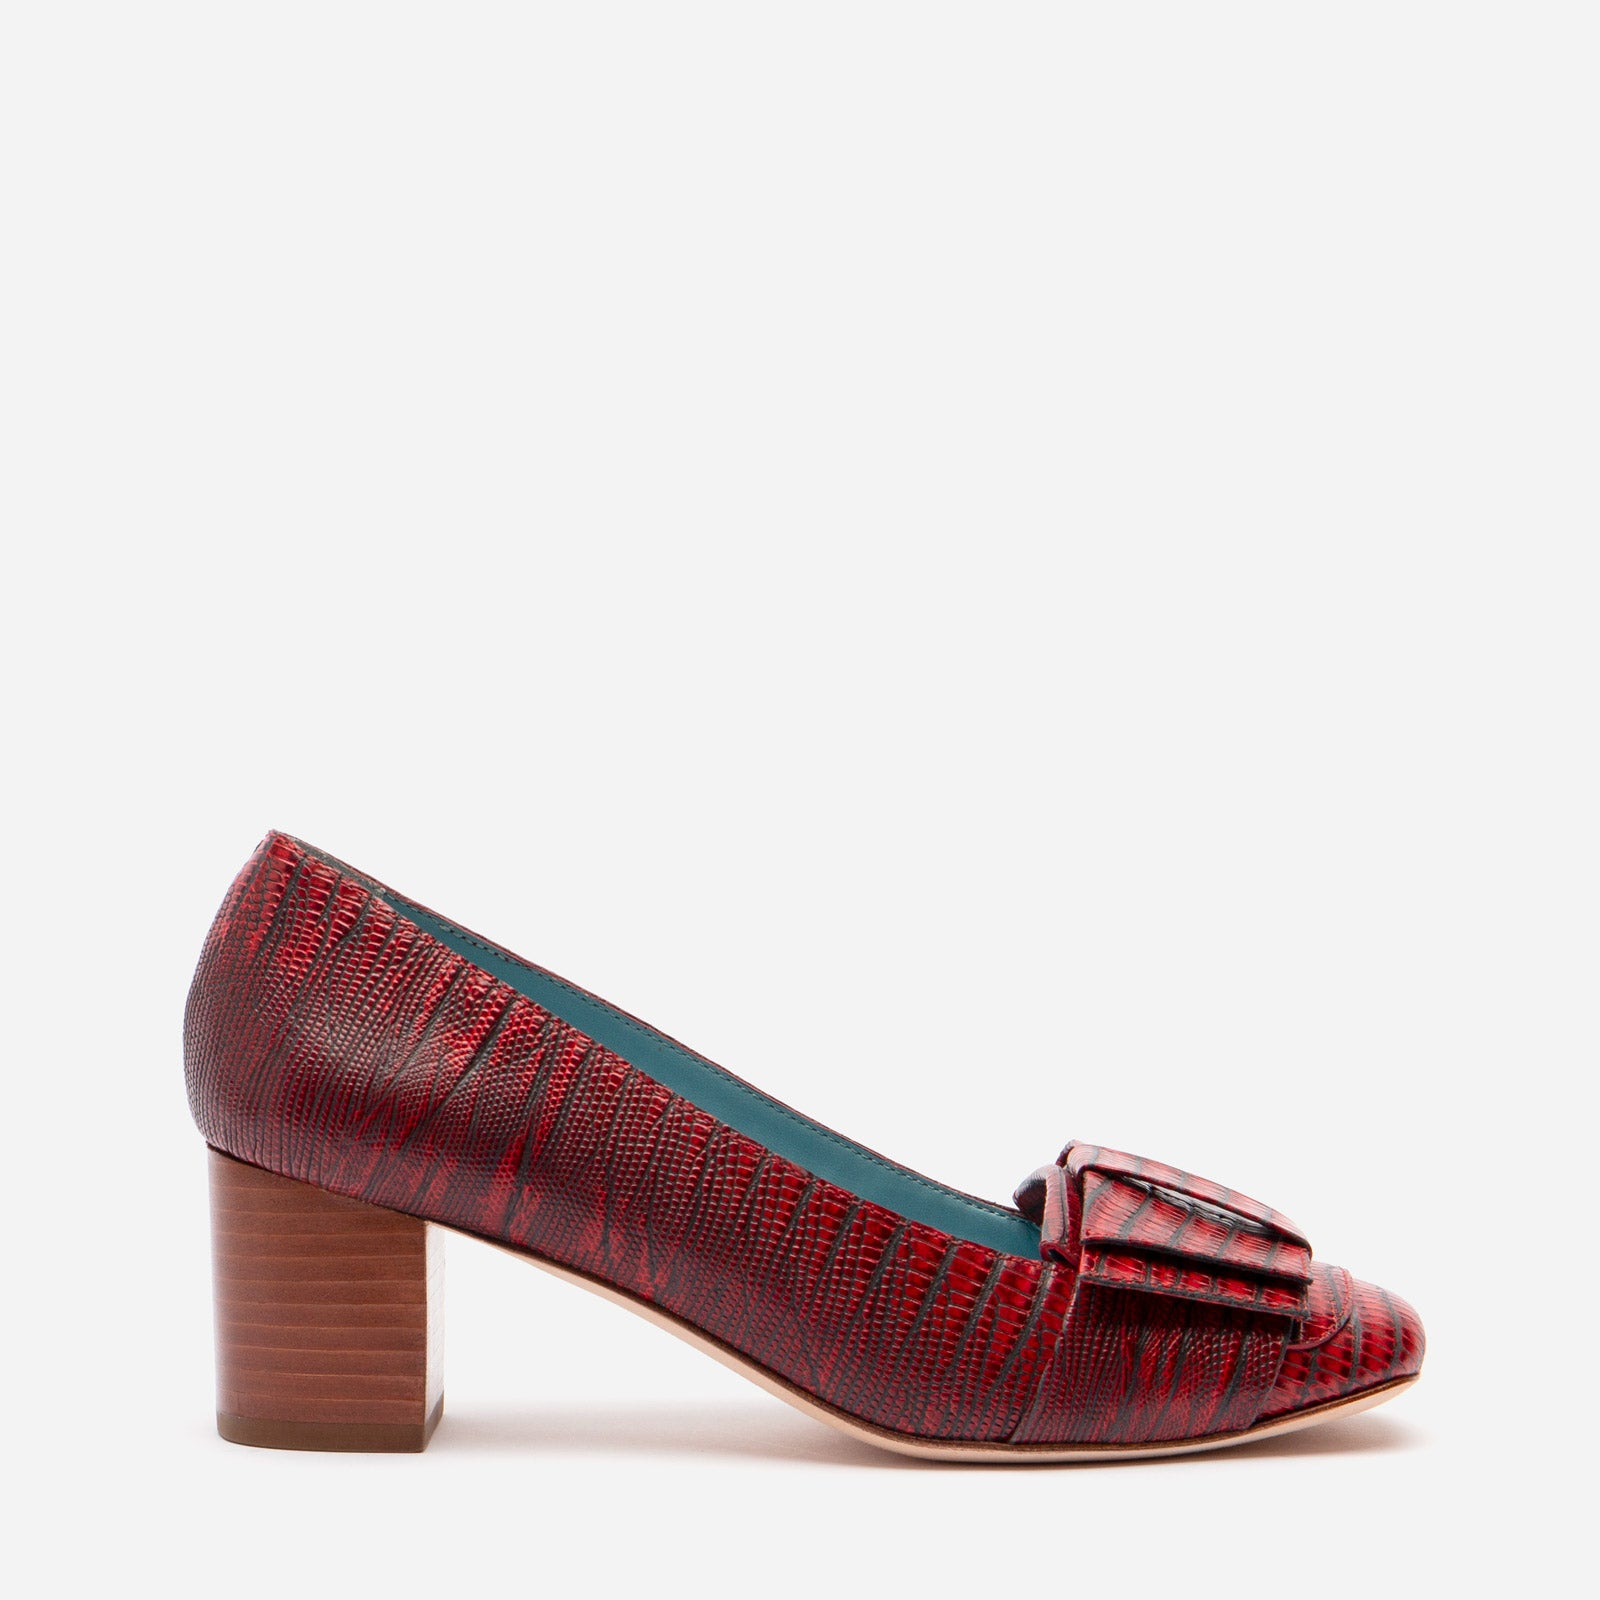 Kit Mary Jane Heels Lizard Printed Leather Red